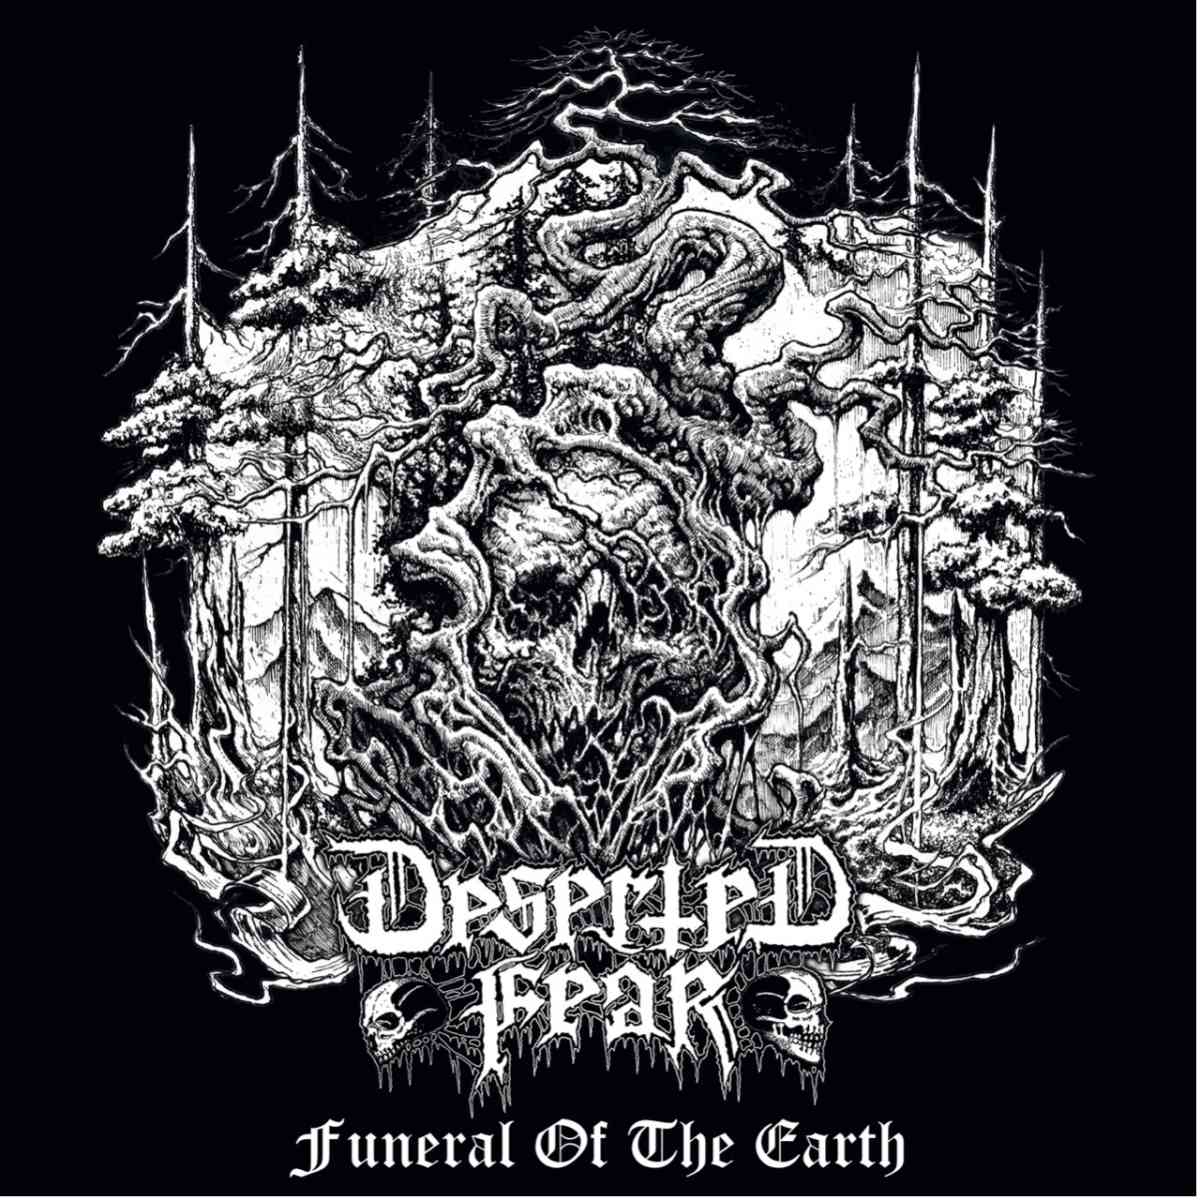 deserted fear - Funeral Of The Earth - album cover